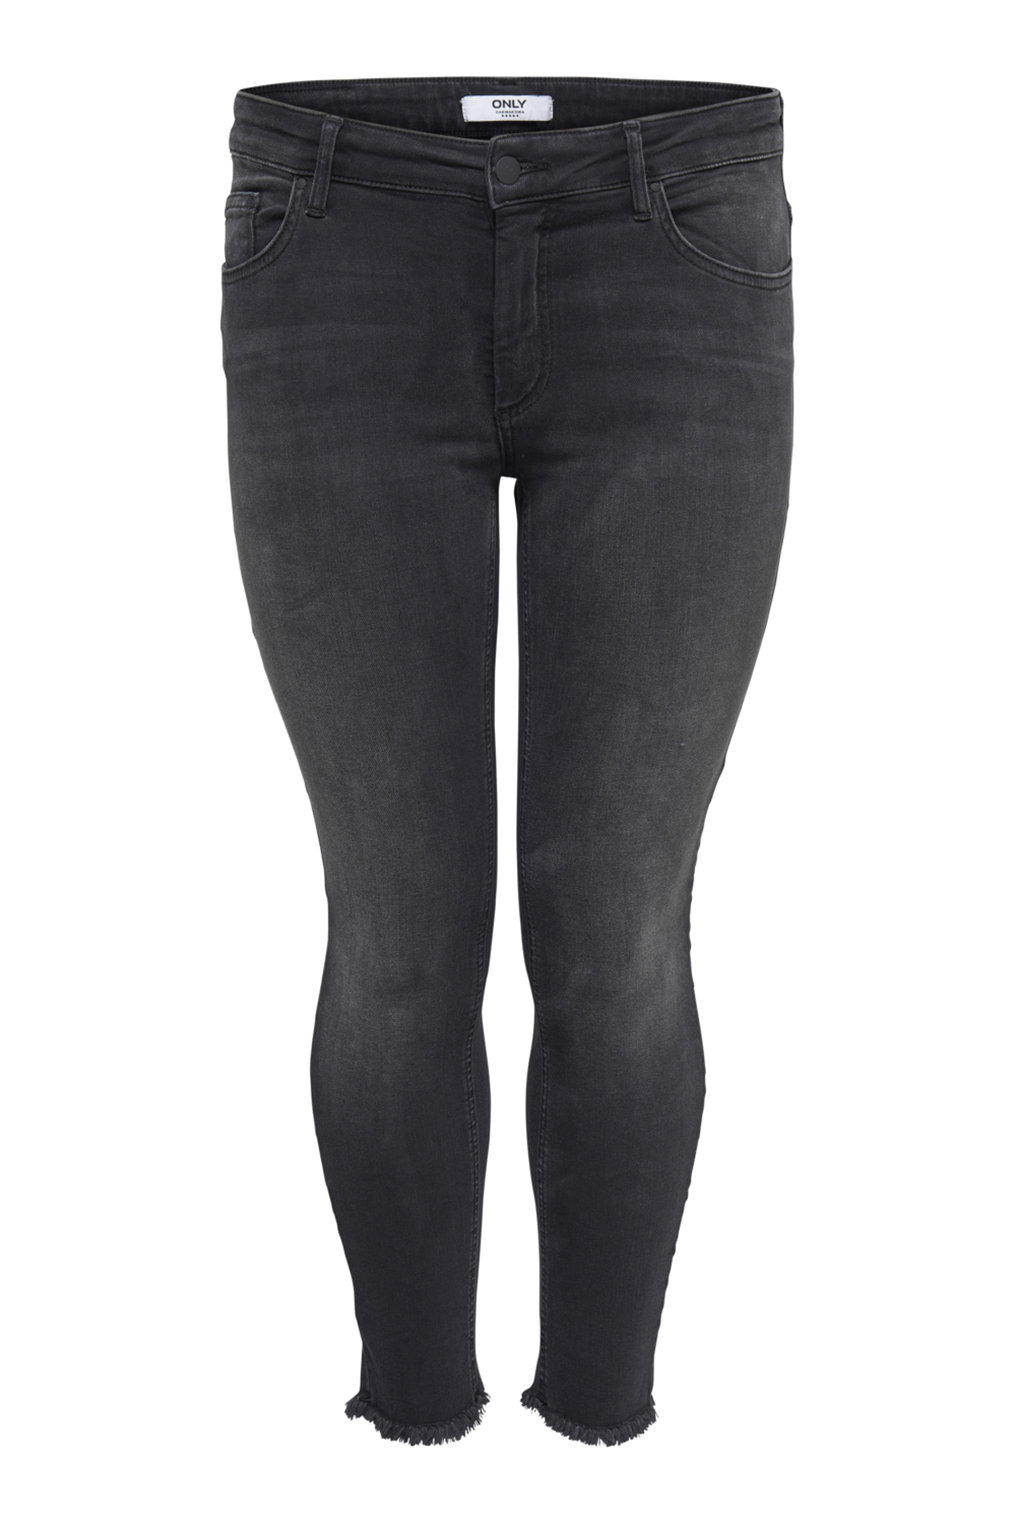 Jeans Only Carmakoma WILLY cropped